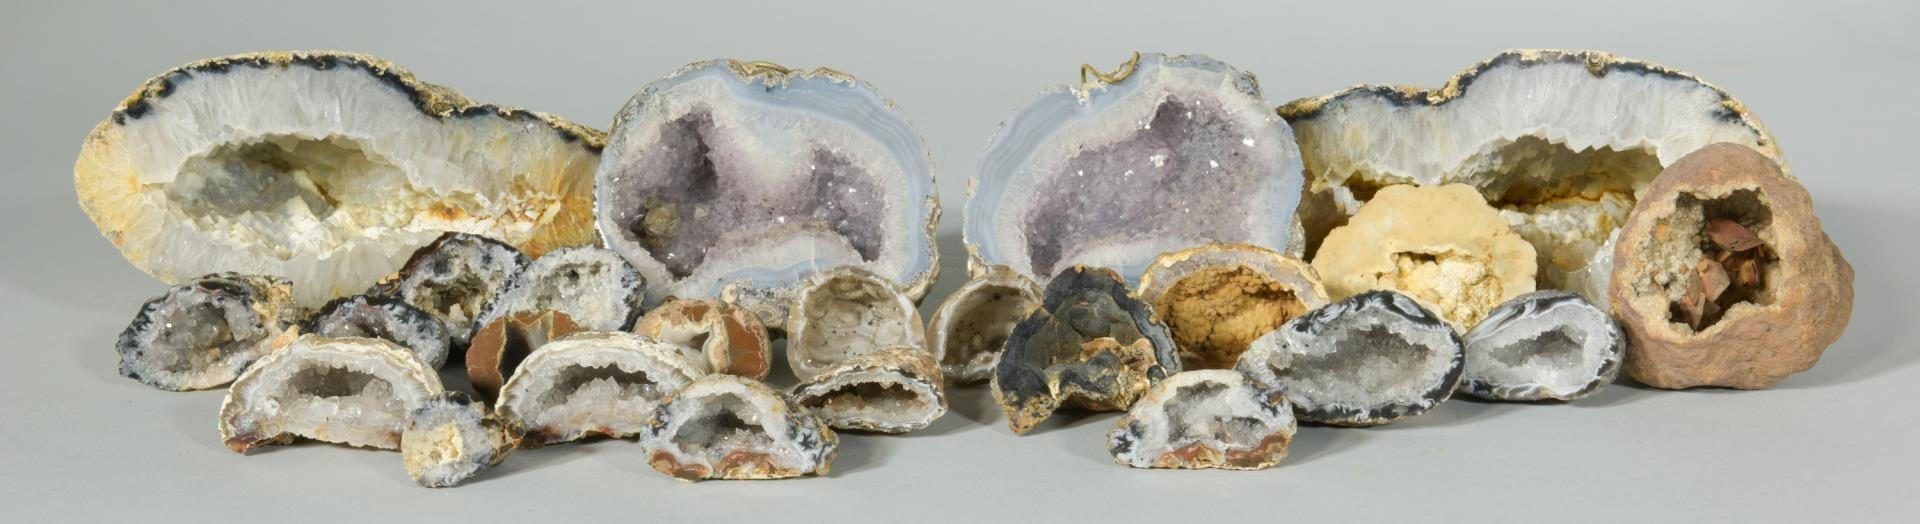 Lot 222: Large Mineral /Geode Collection